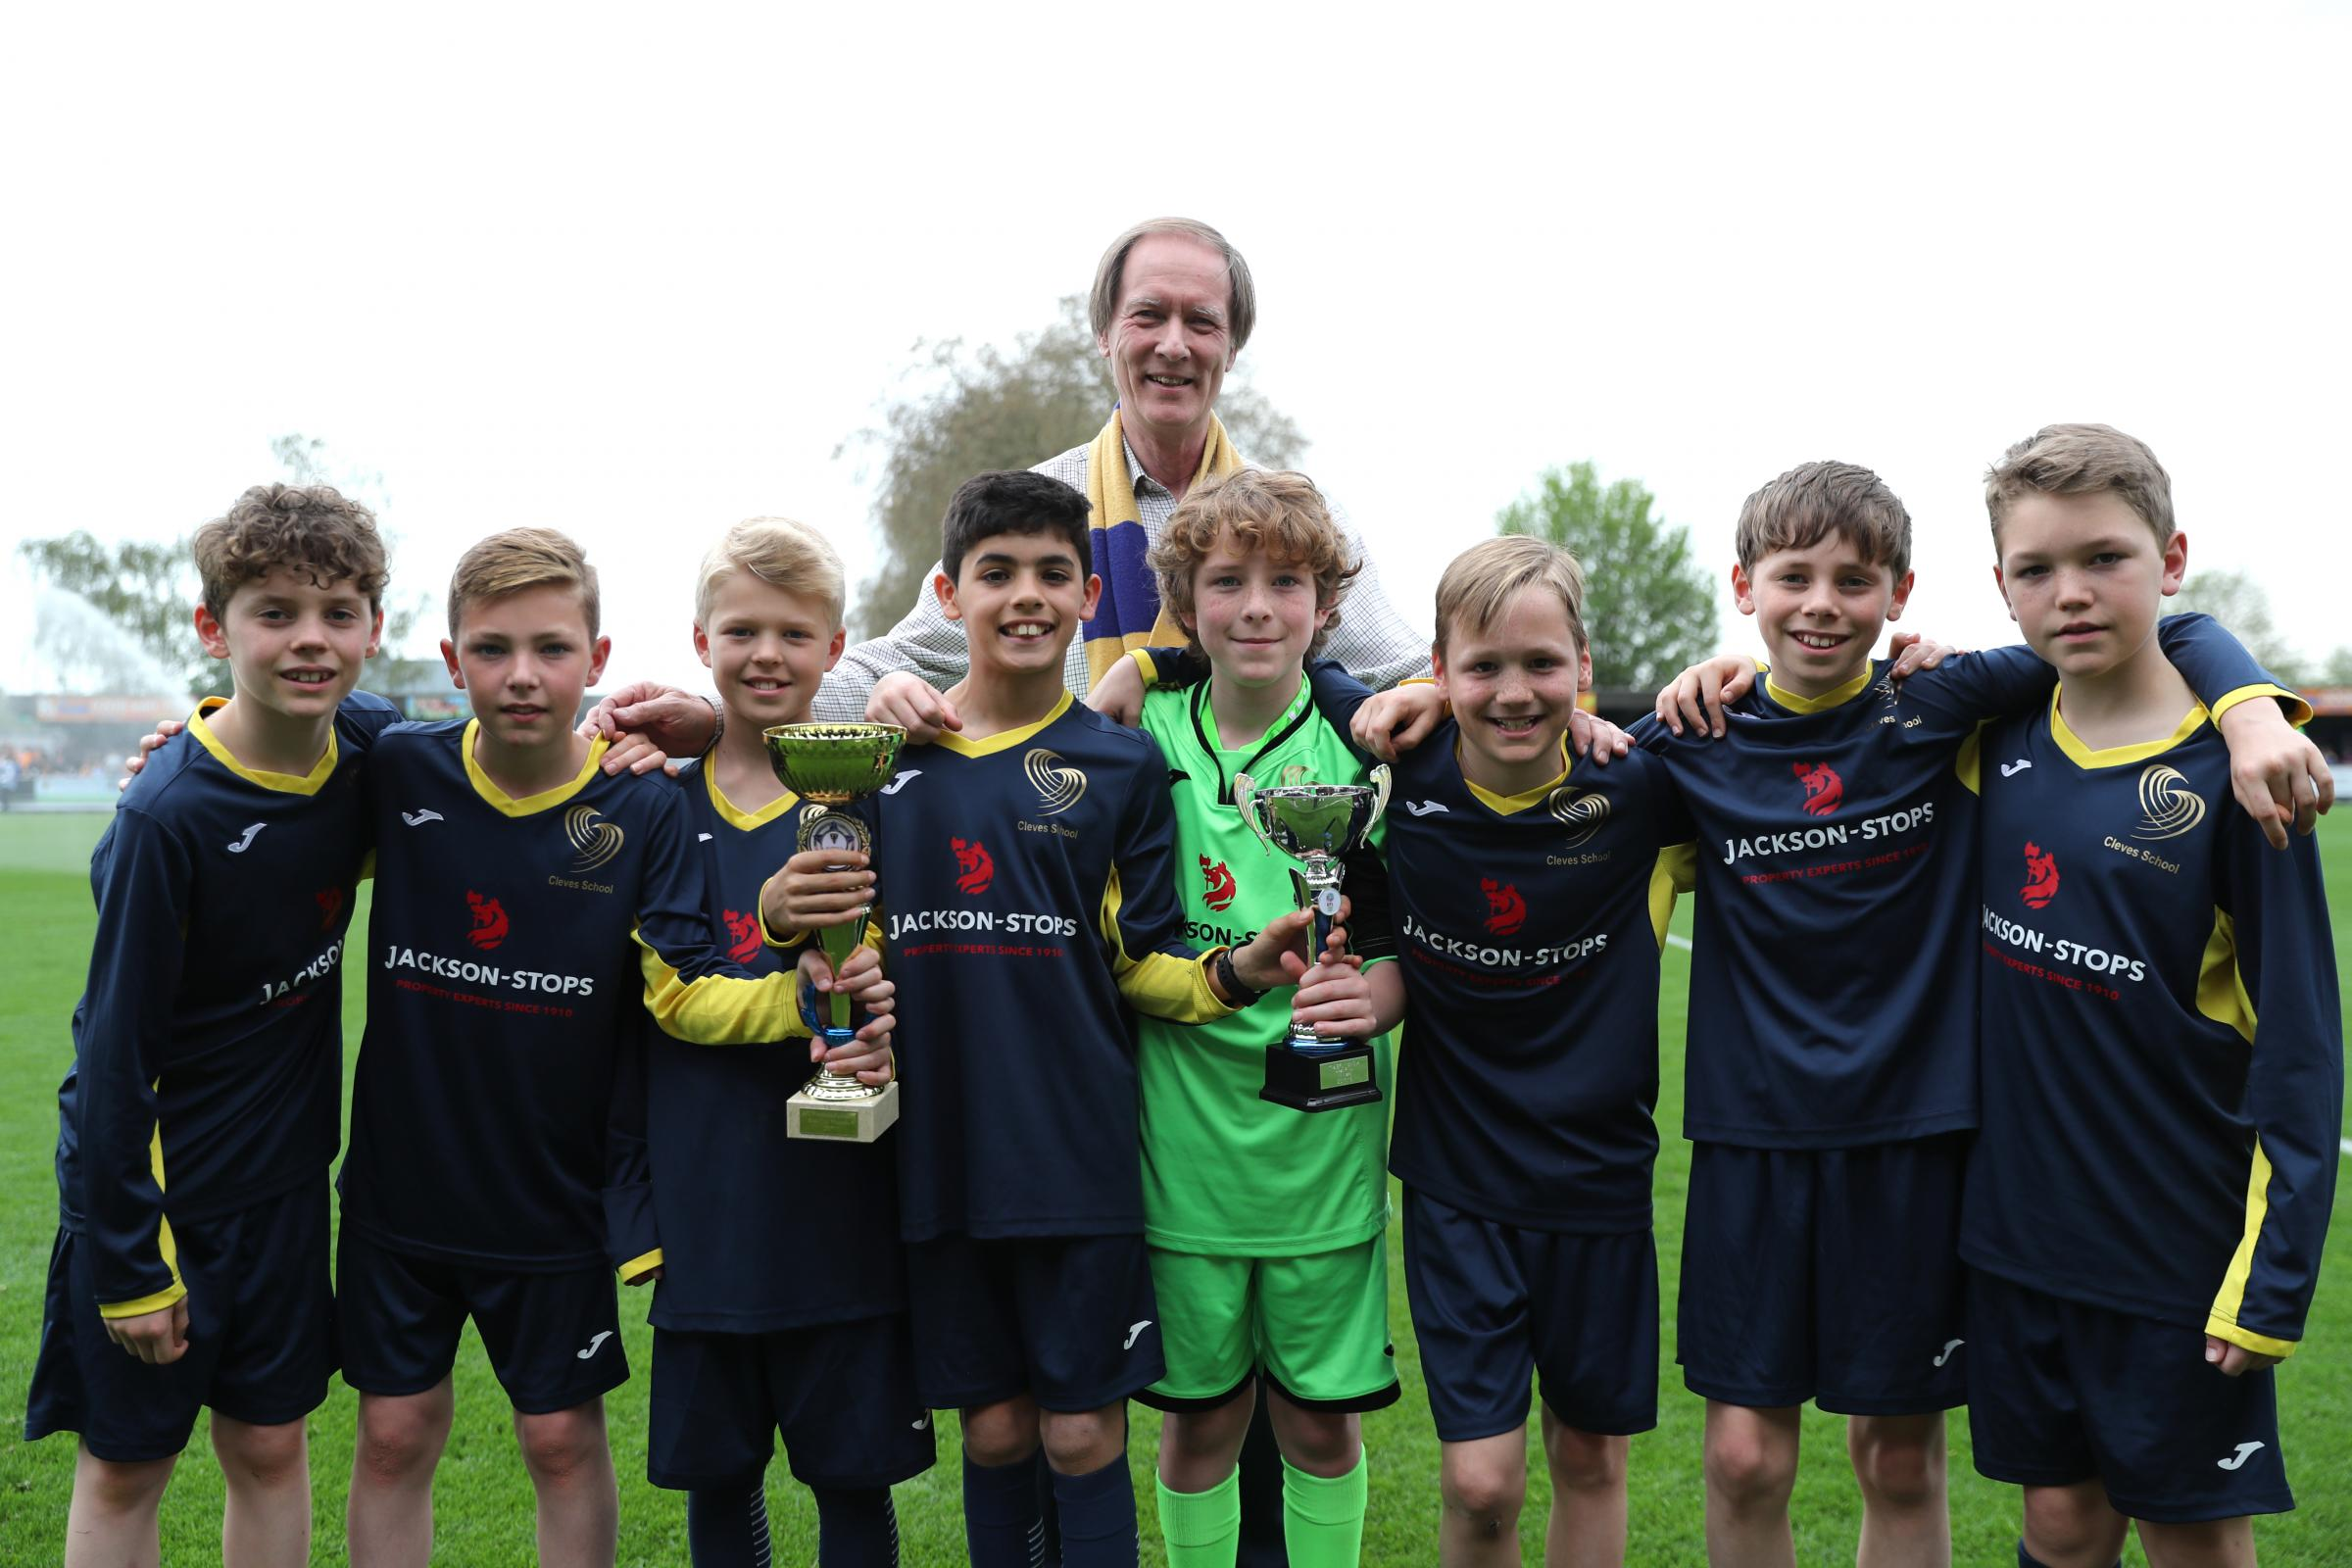 Cleves school with AFC Wimbledon Chief Executive Erik Samuelson. Picture by Matthew Redman.